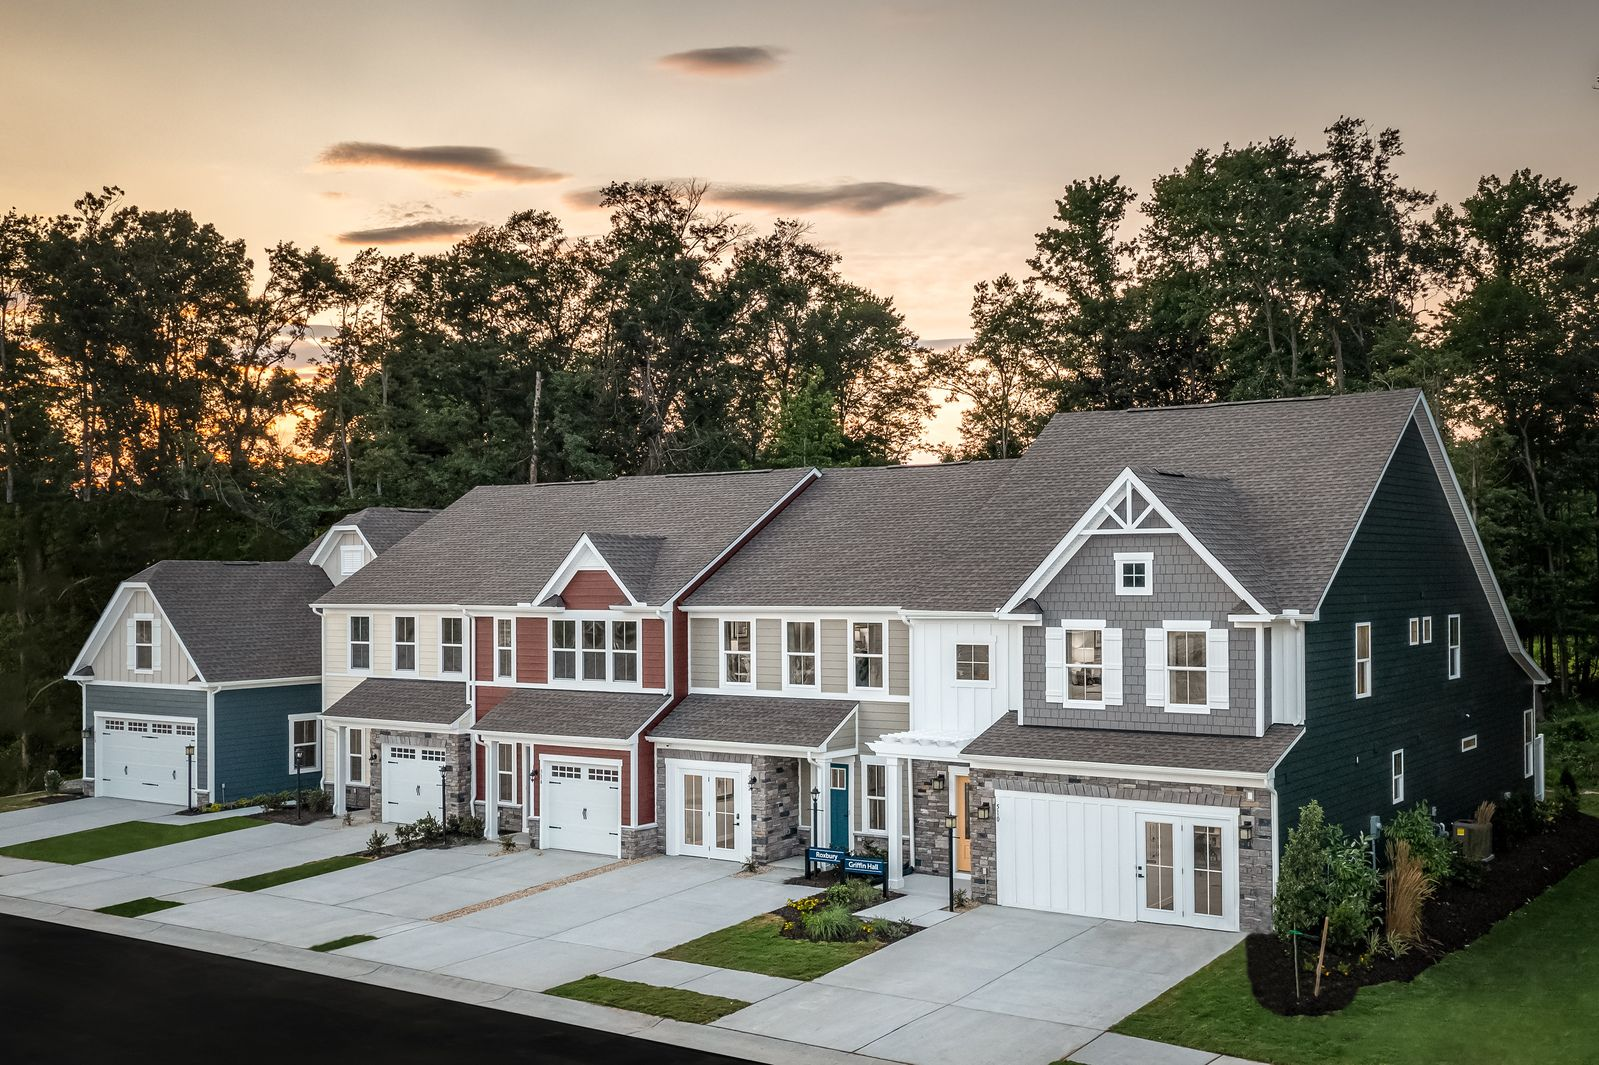 Grand Opening! Welcome to Cardinal Meadows!:New, 2-story craftsman style townhomes w/ 1st floor owner's suites available as well as 1-2 car garages & backyards! Unmatched in access to shopping, interstates & Grassfield schools. From the $300s.